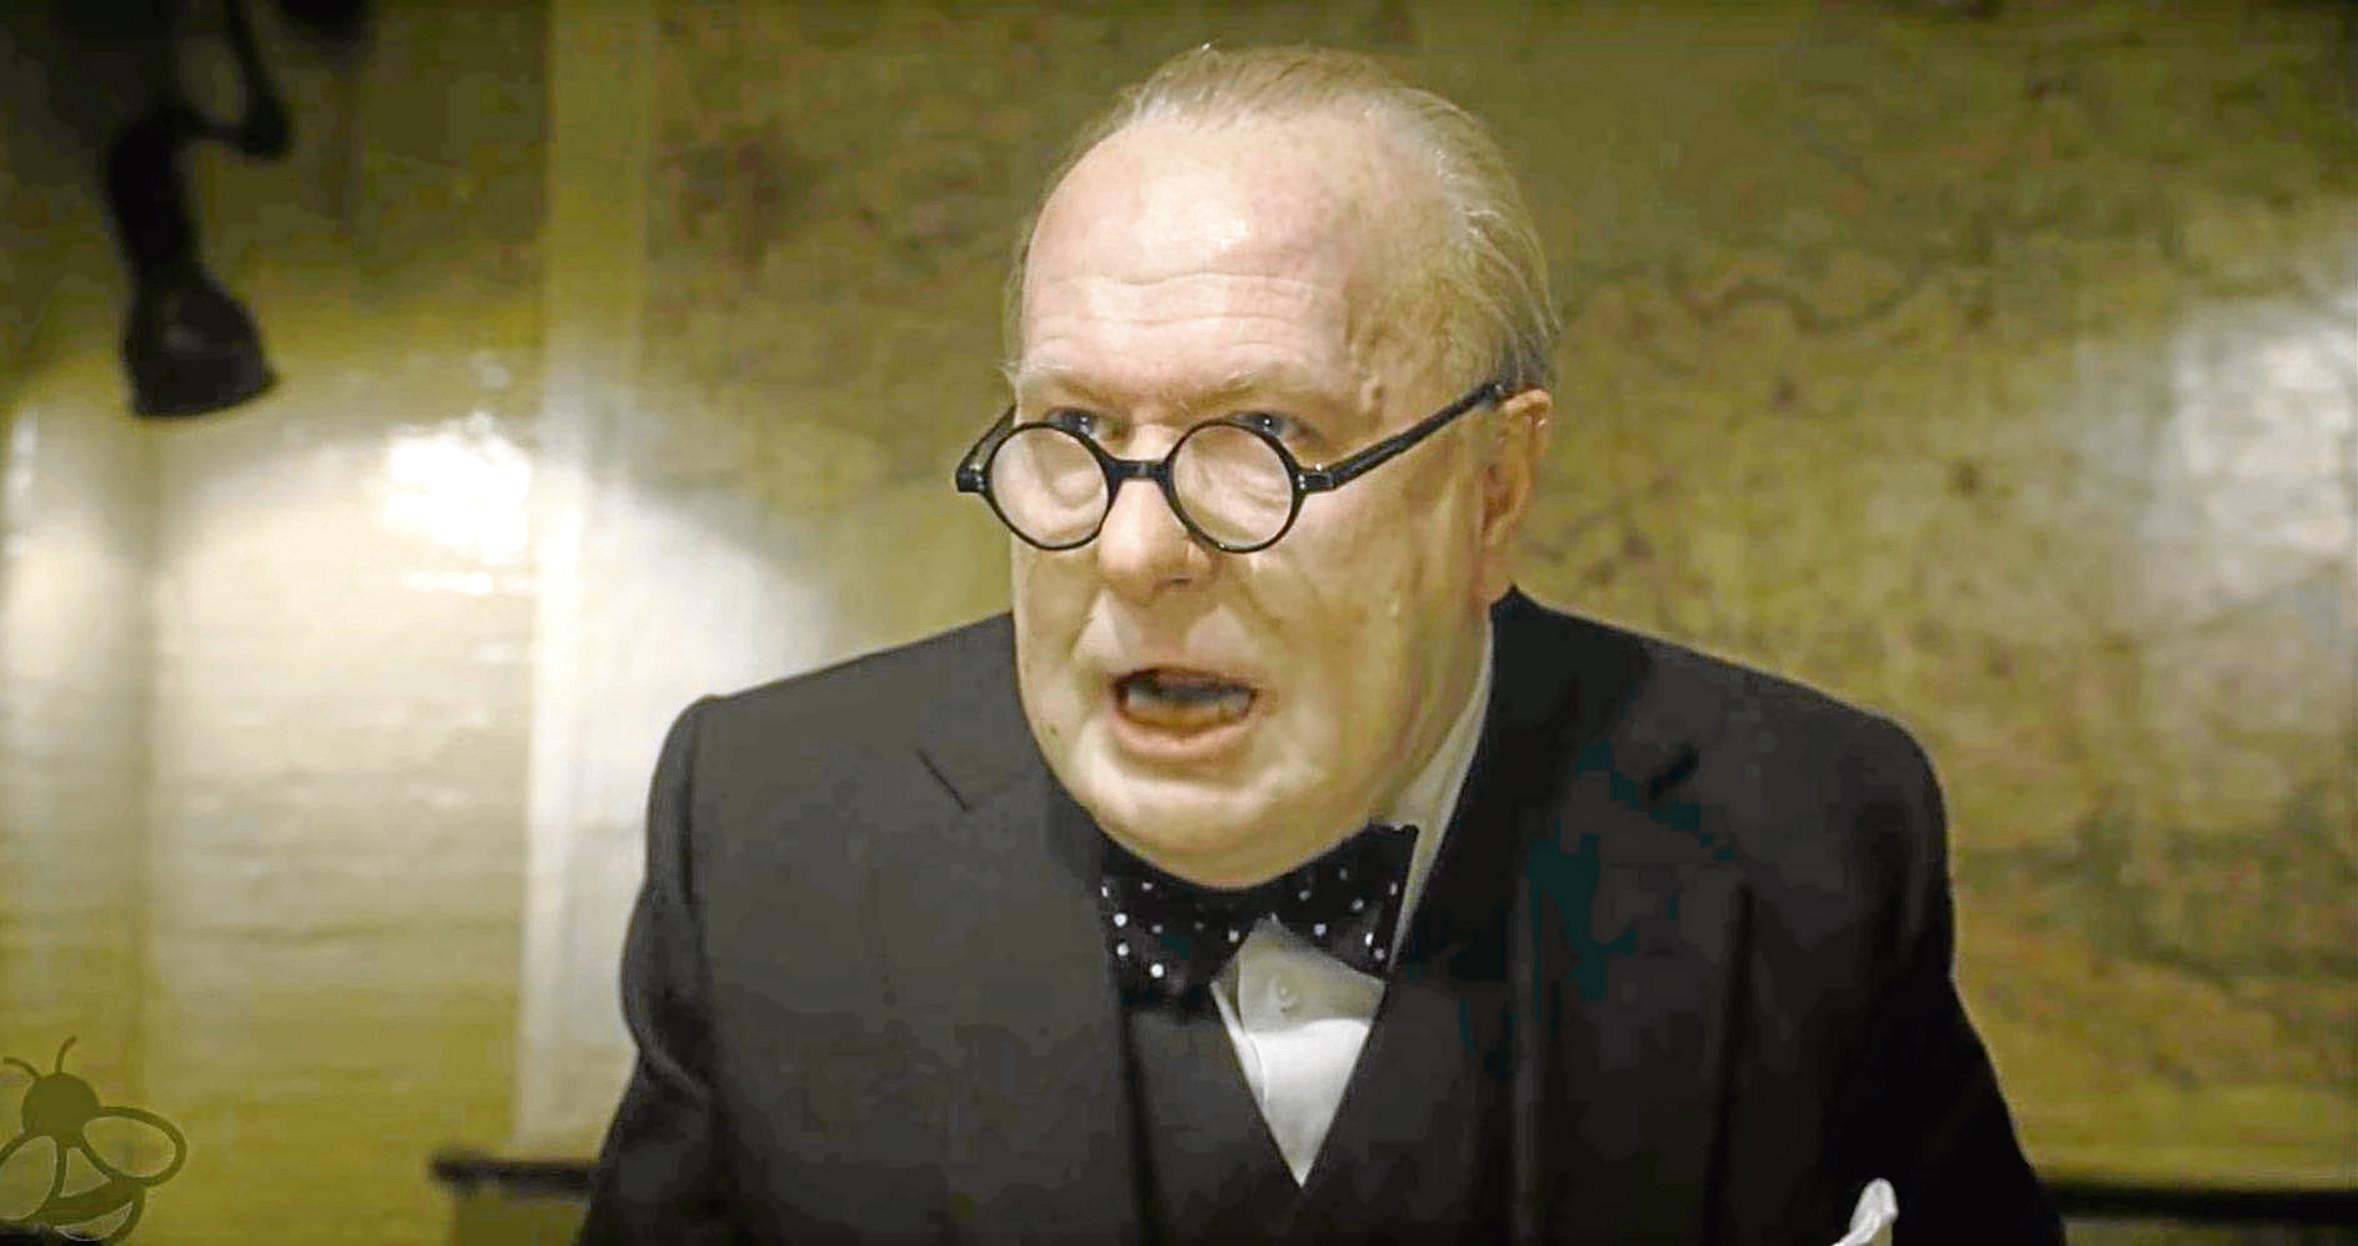 Gary Oldman in 'The Darkest Hour' (Focus)